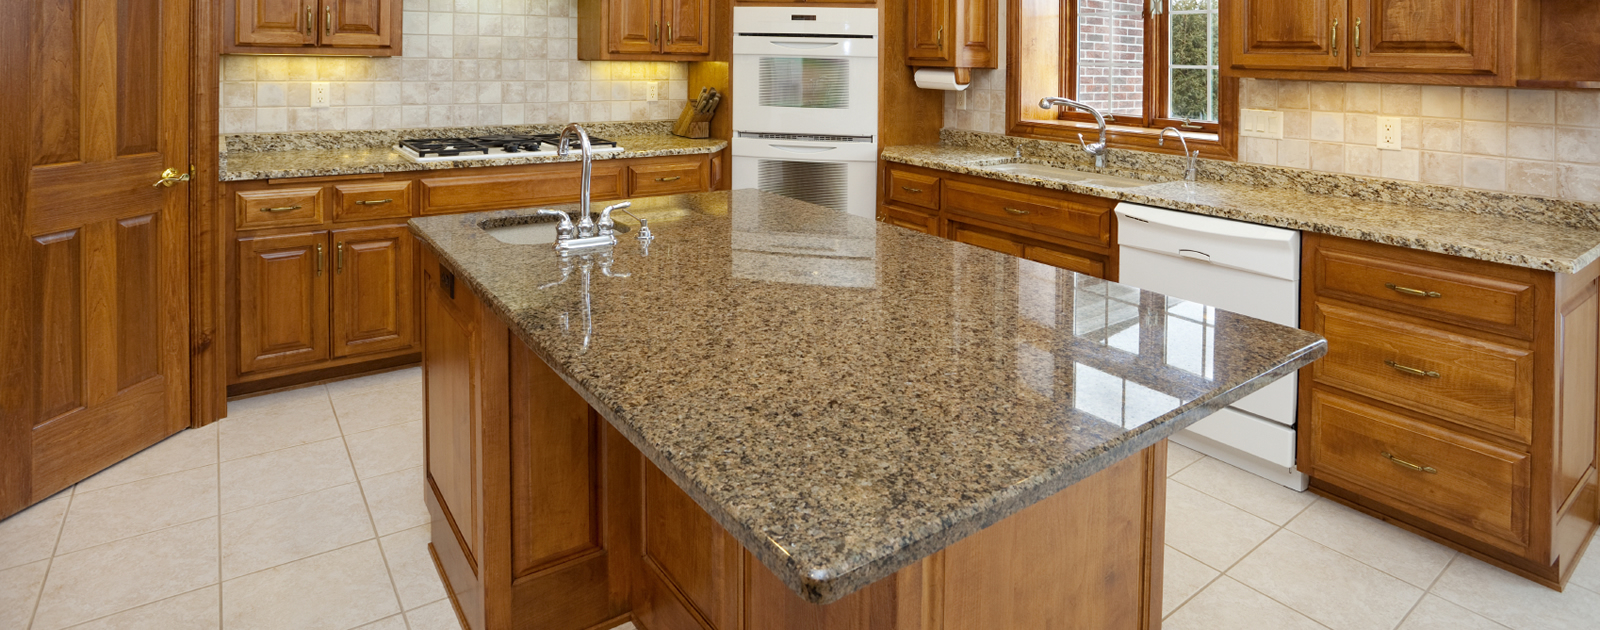 Kitchen Granite Counter Top Twin Cities Top Rated Discount Granite Countertop Installation